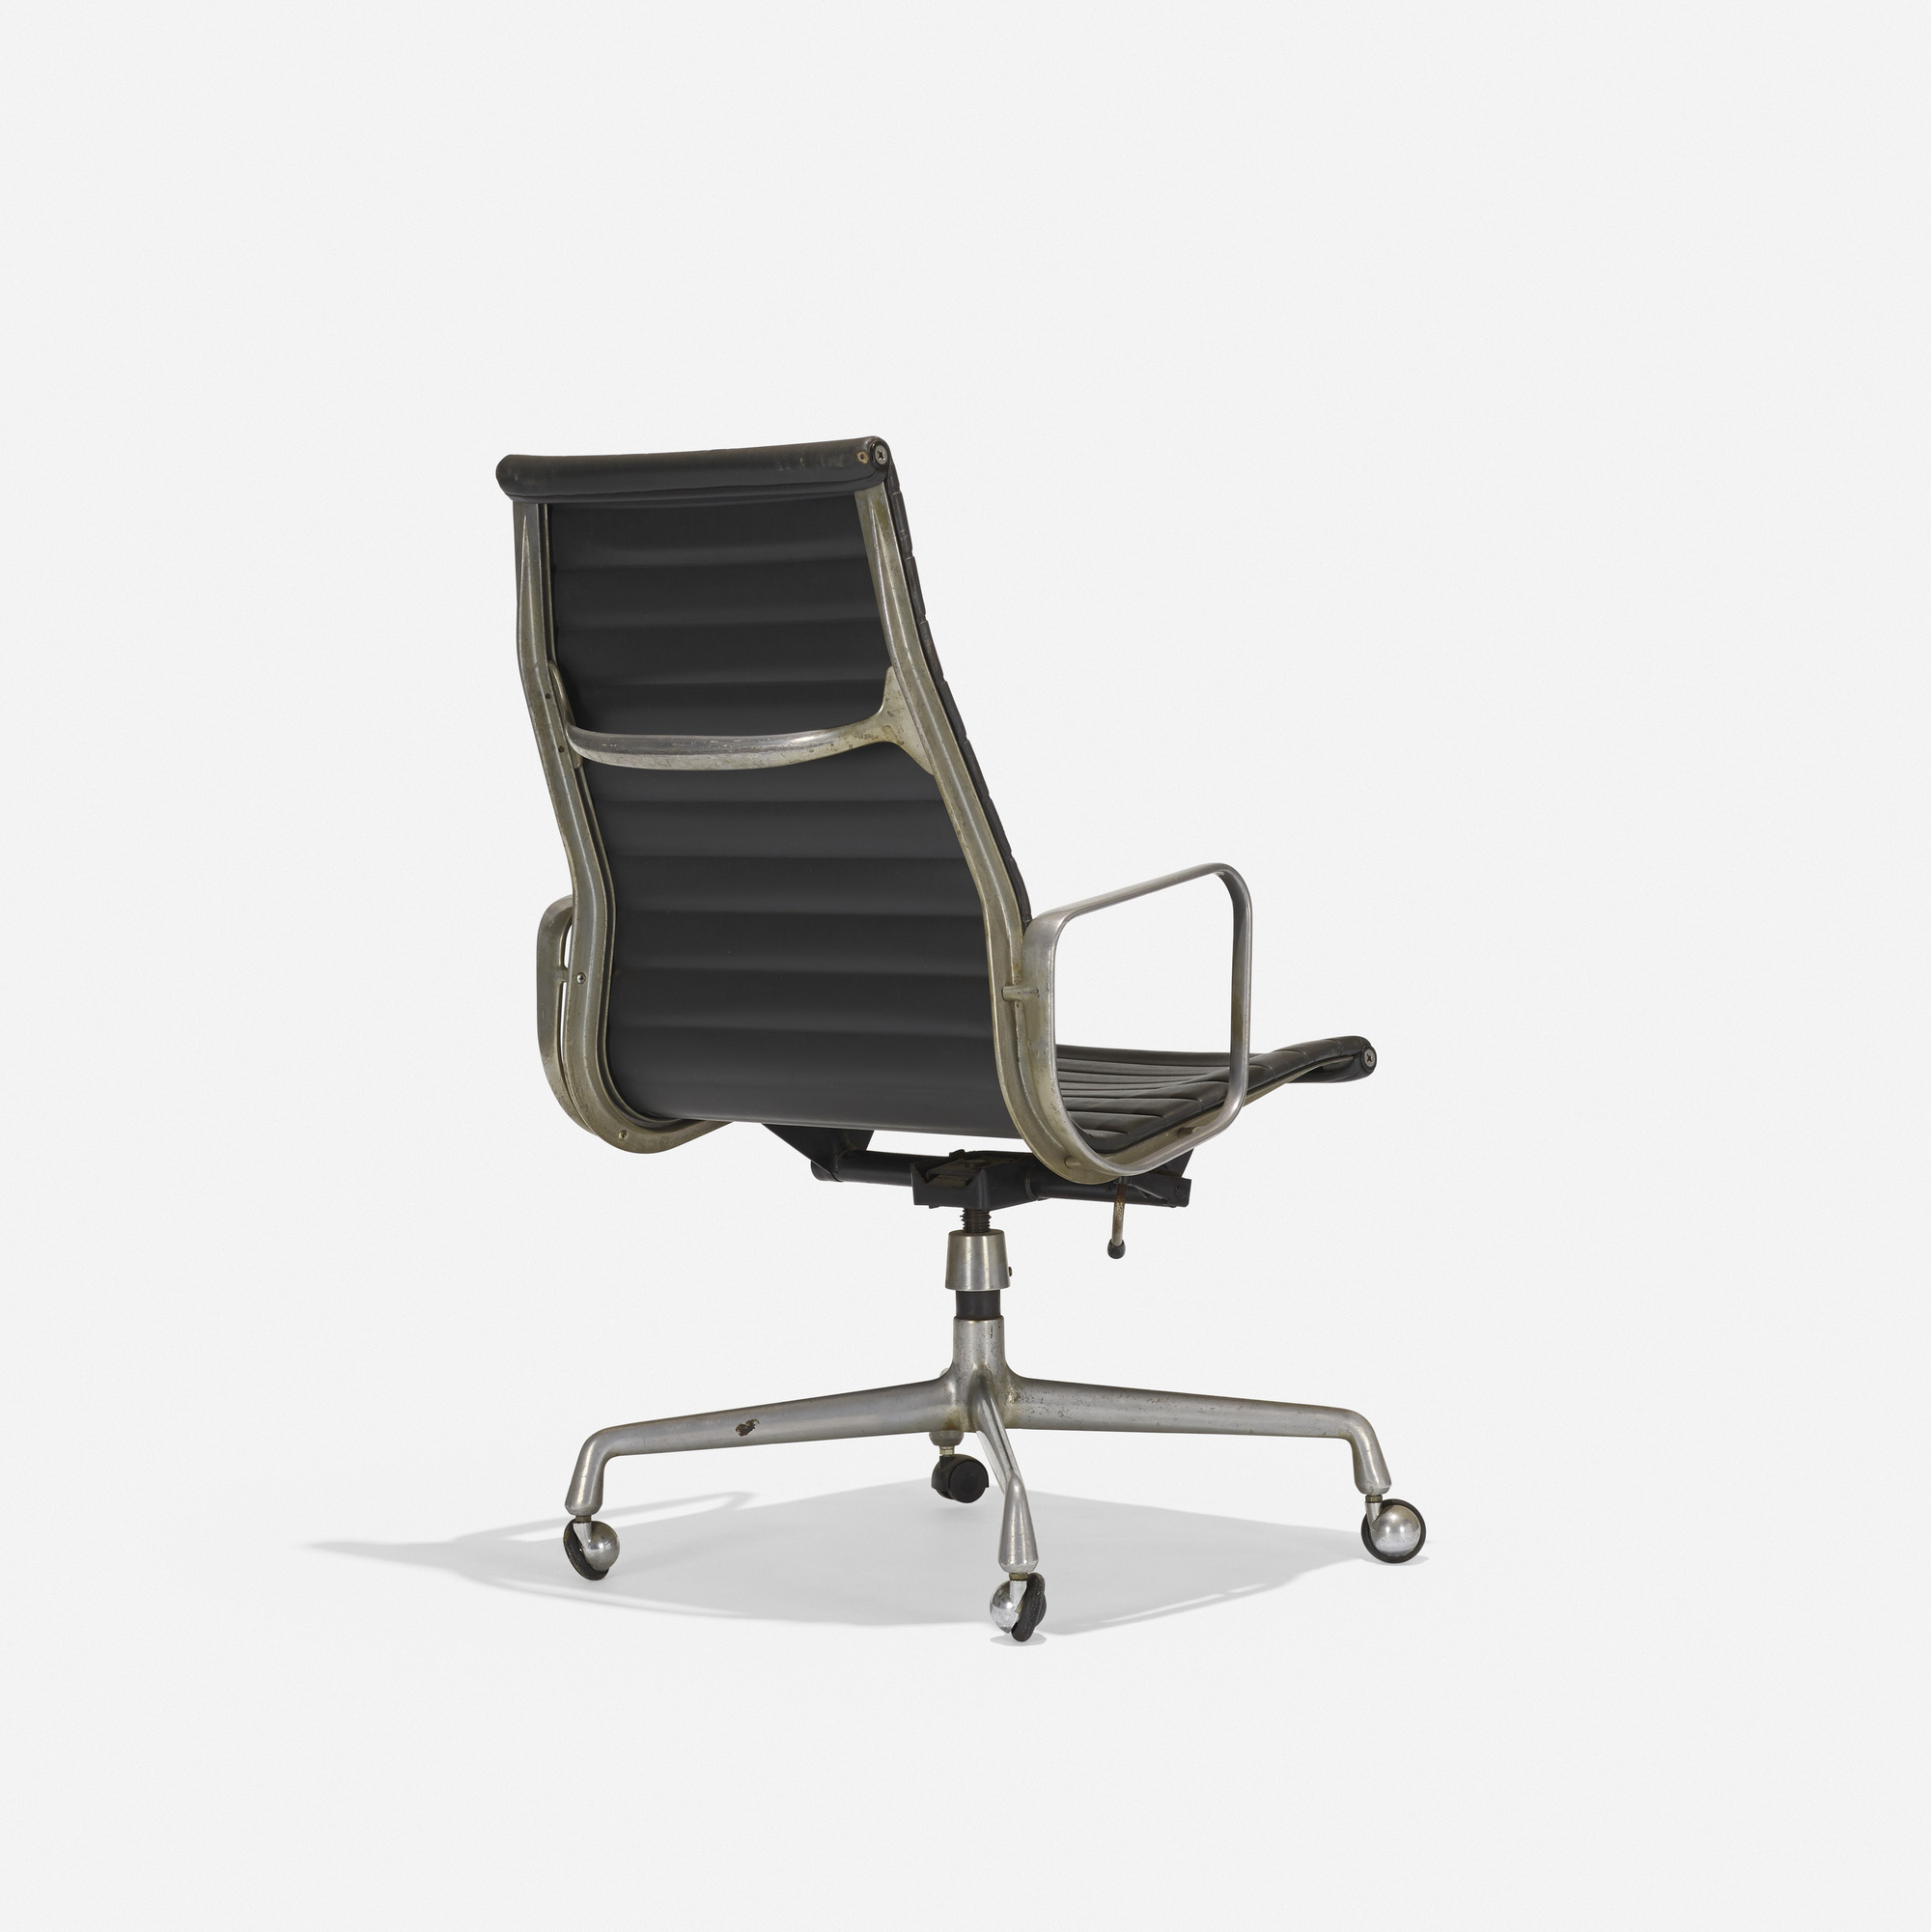 221: Charles and Ray Eames / Aluminum Group lounge chair (1 of 3)